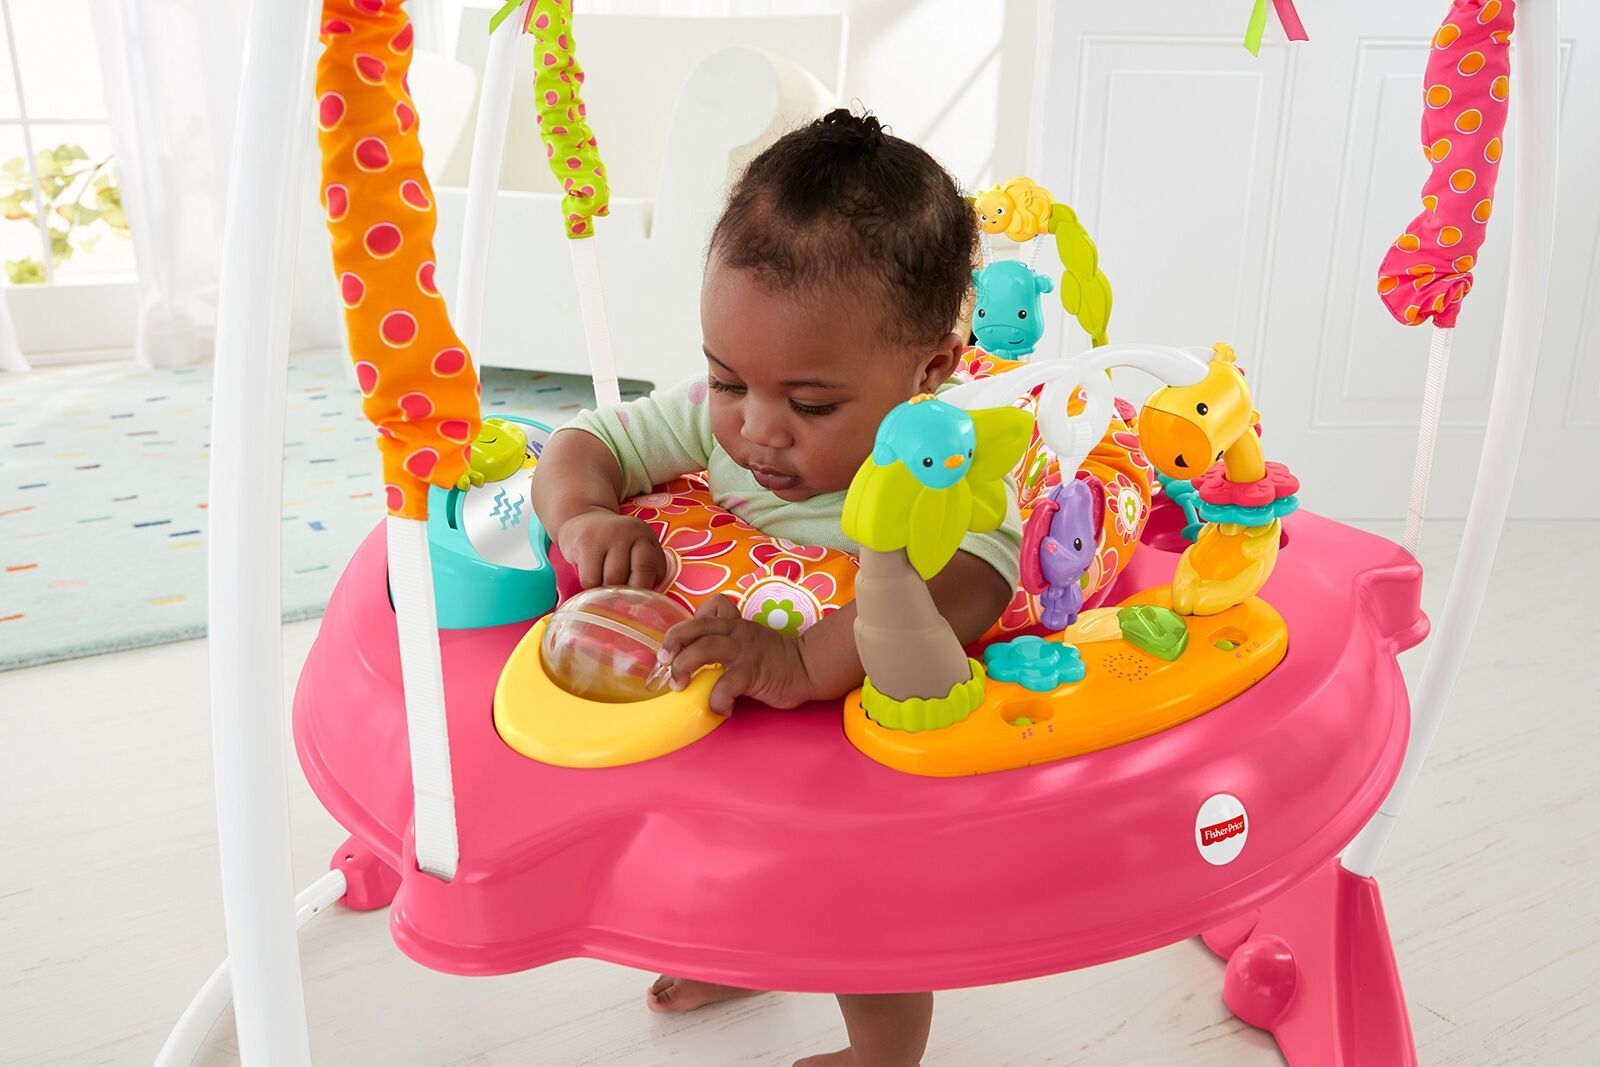 Fisher Price Jumperoo Baby Girl Jumper Bouncer Activity Seat Toys Sound Pink Col Fisher Price Jumperoo Cool Baby Stuff Jumperoo